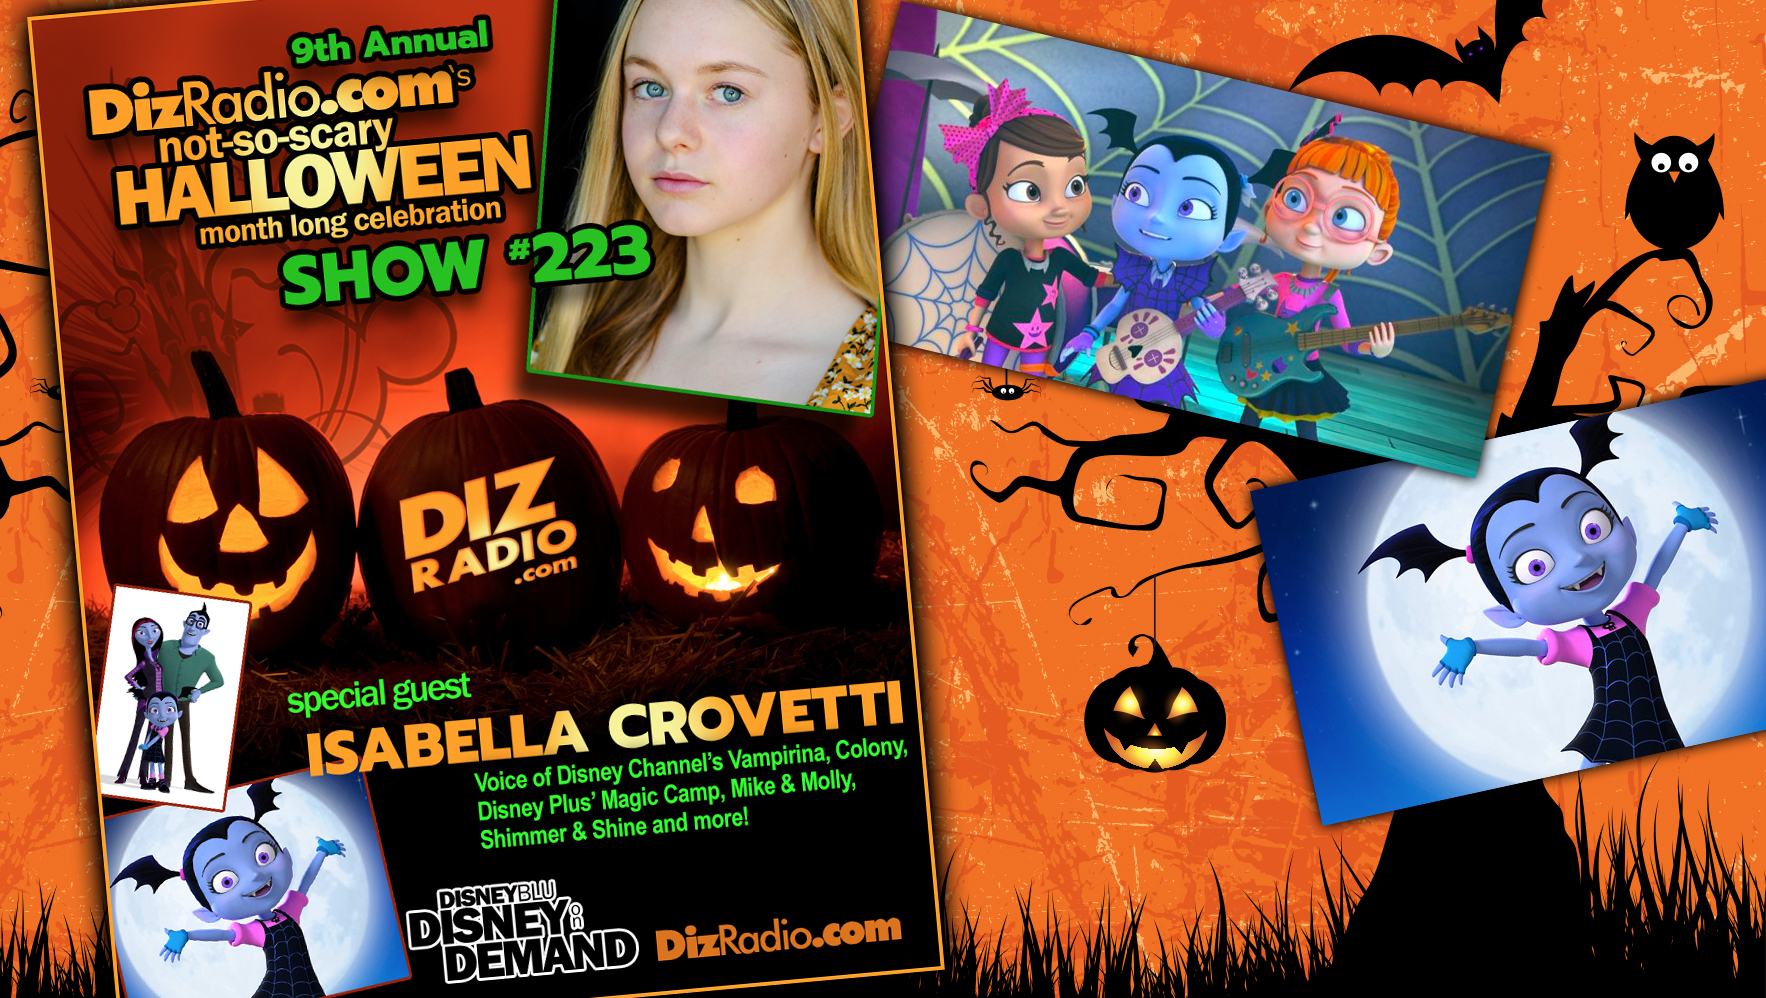 DisneyBlu's DizRadio Disney on Demand Show #223 w/ Special Guest ISABELLA CROVETTI (Voice of Disney Channel's Vampirina, Colony, Disney Plus' Magic Camp, Shimmer and Shine and more!)